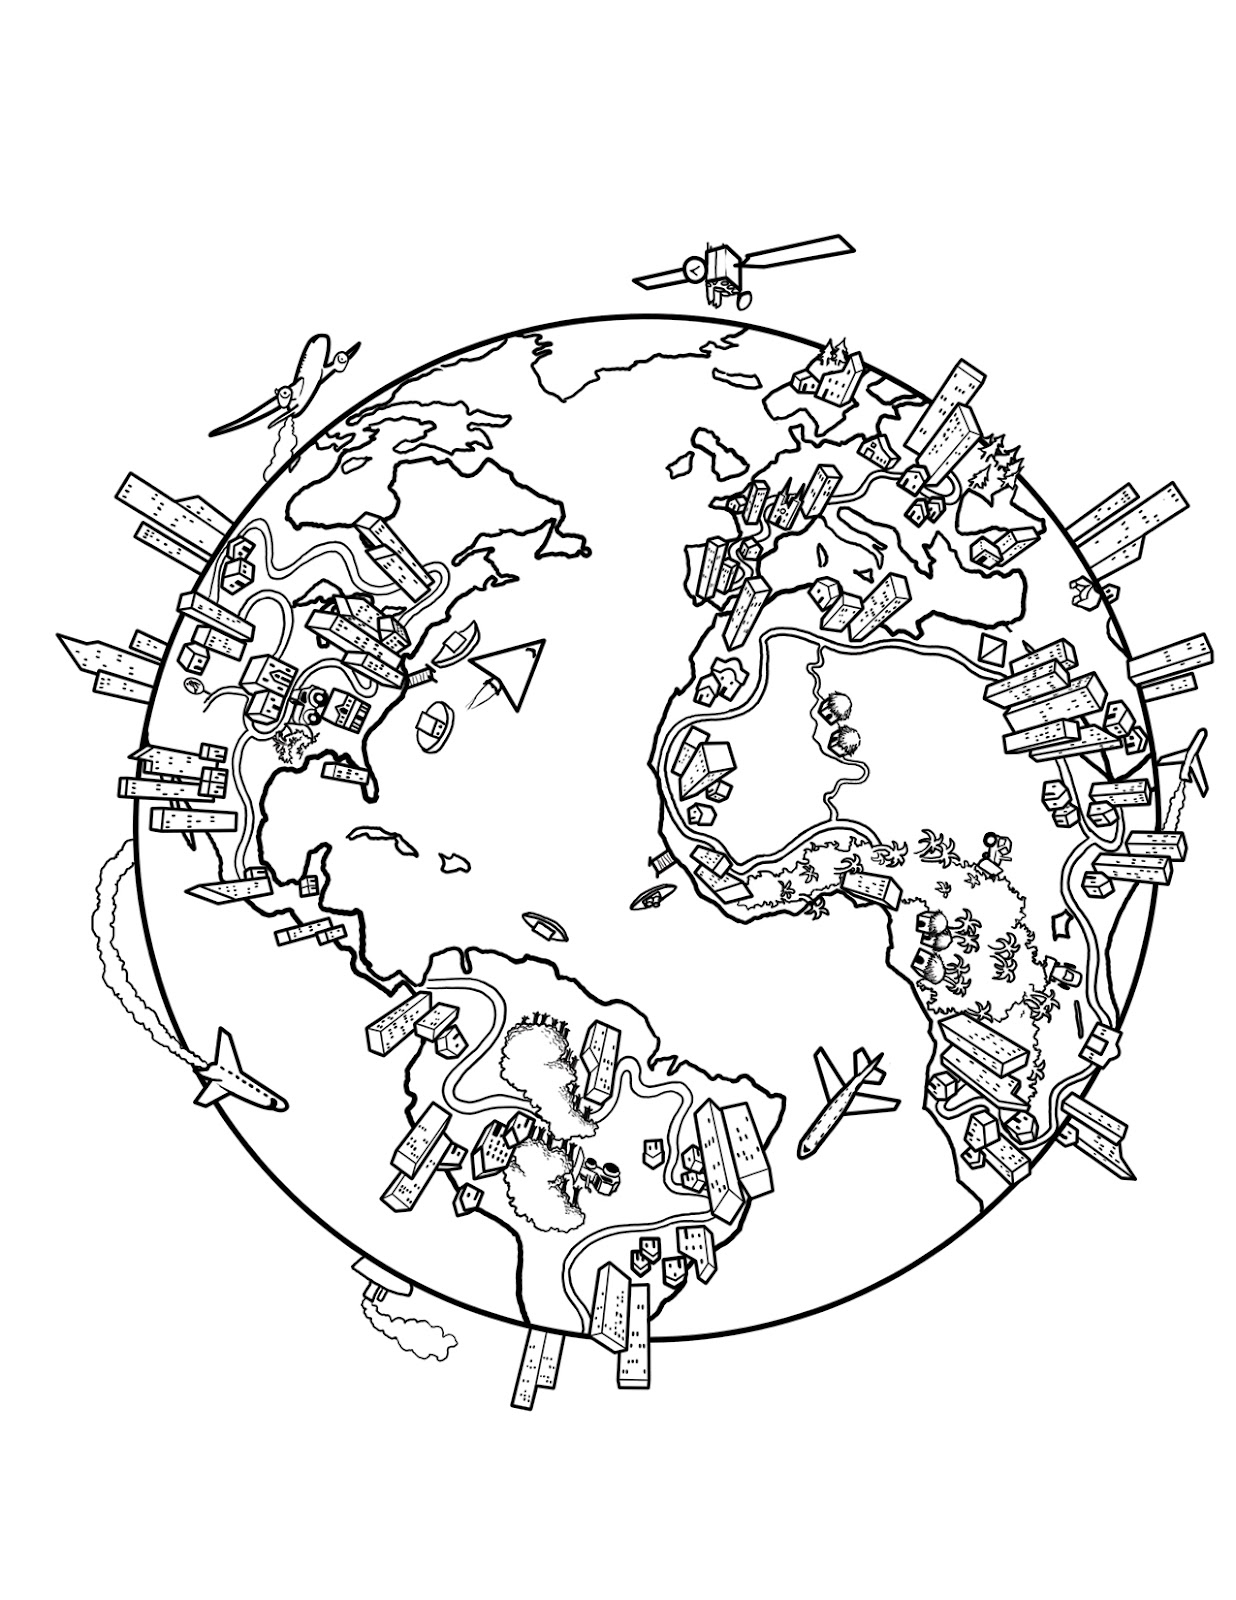 jeneart: The World. Coloring page.